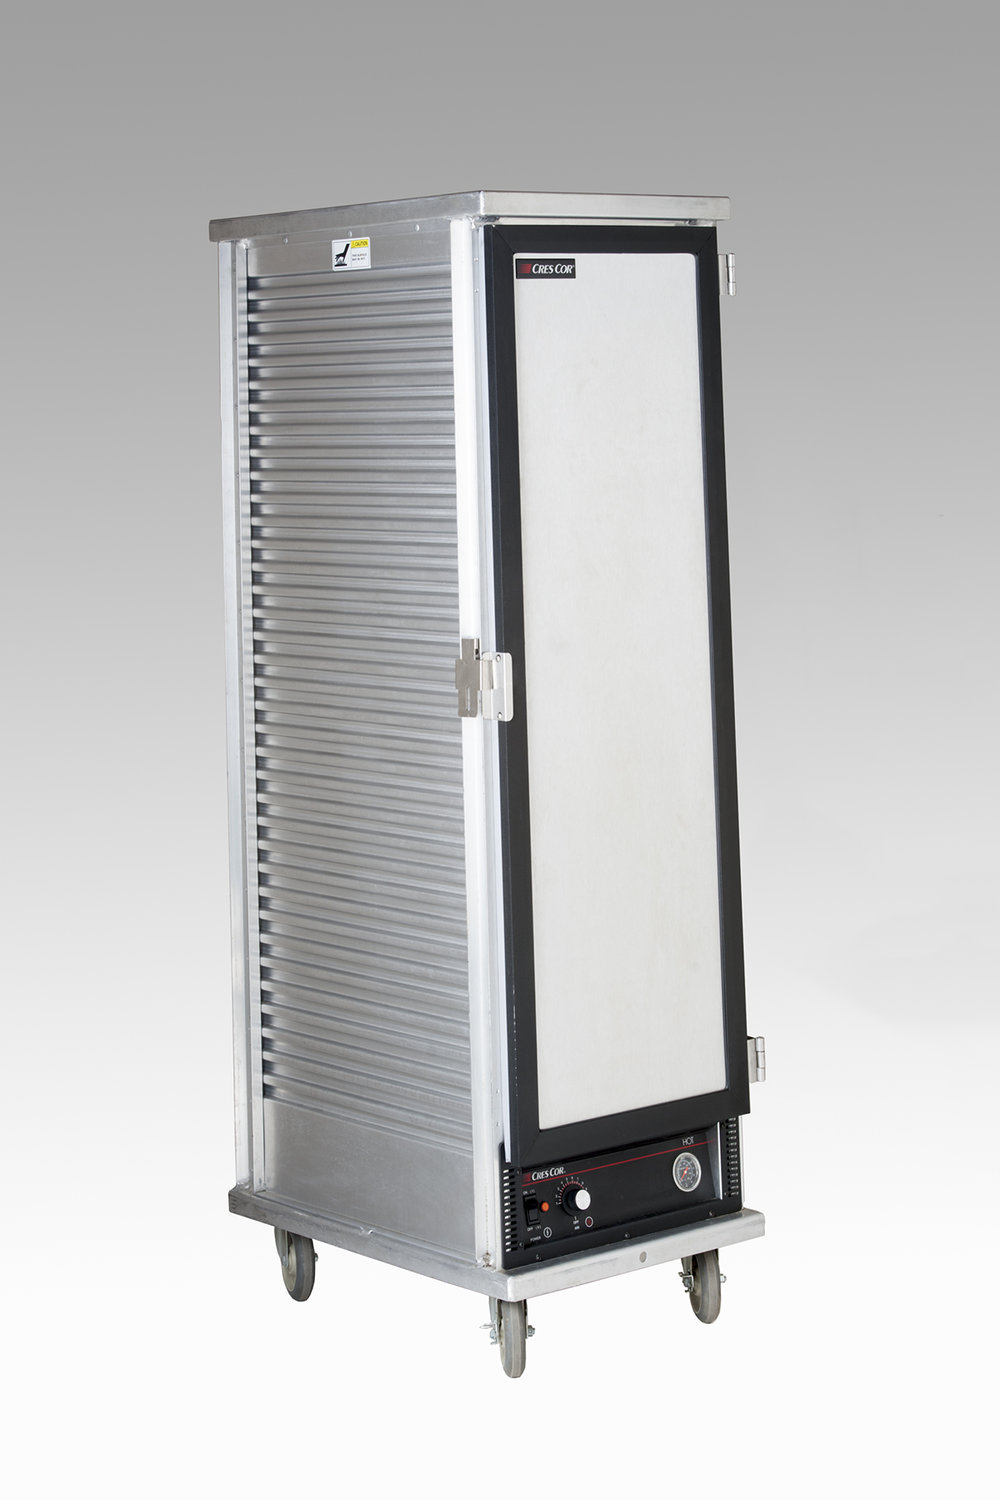 Crescore Electric Heated Cabinet   Space for 36 Sheet Pans  18 amps  $170.00